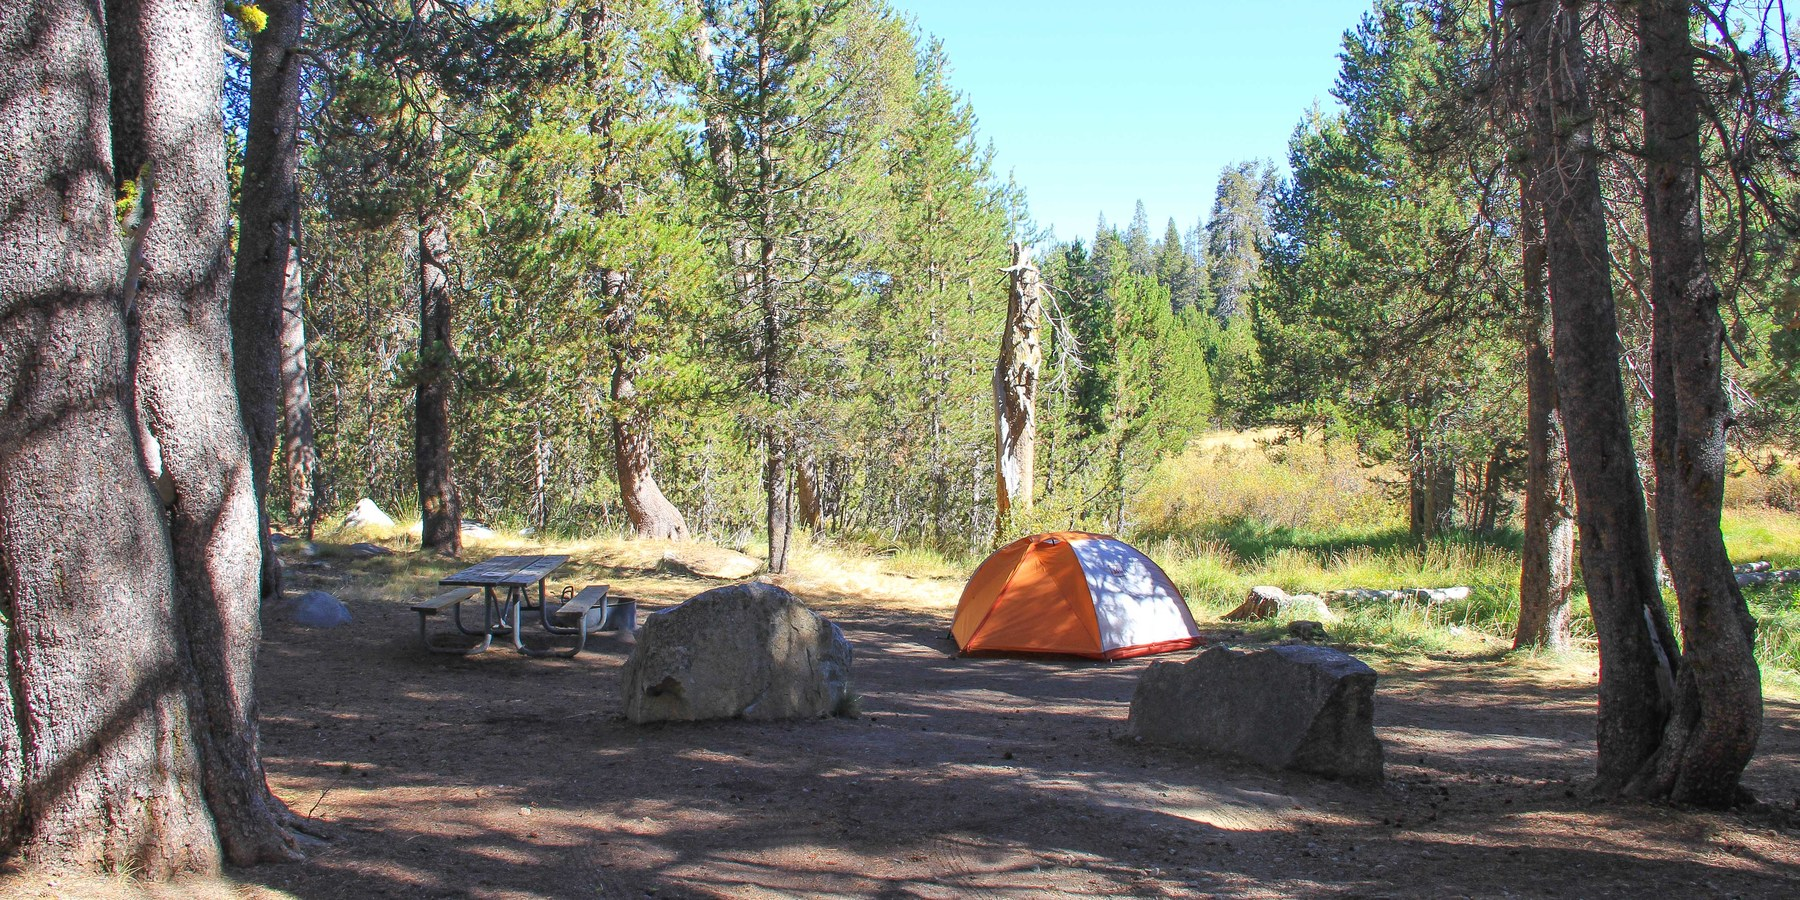 guide to camping in yosemite national park - outdoor project